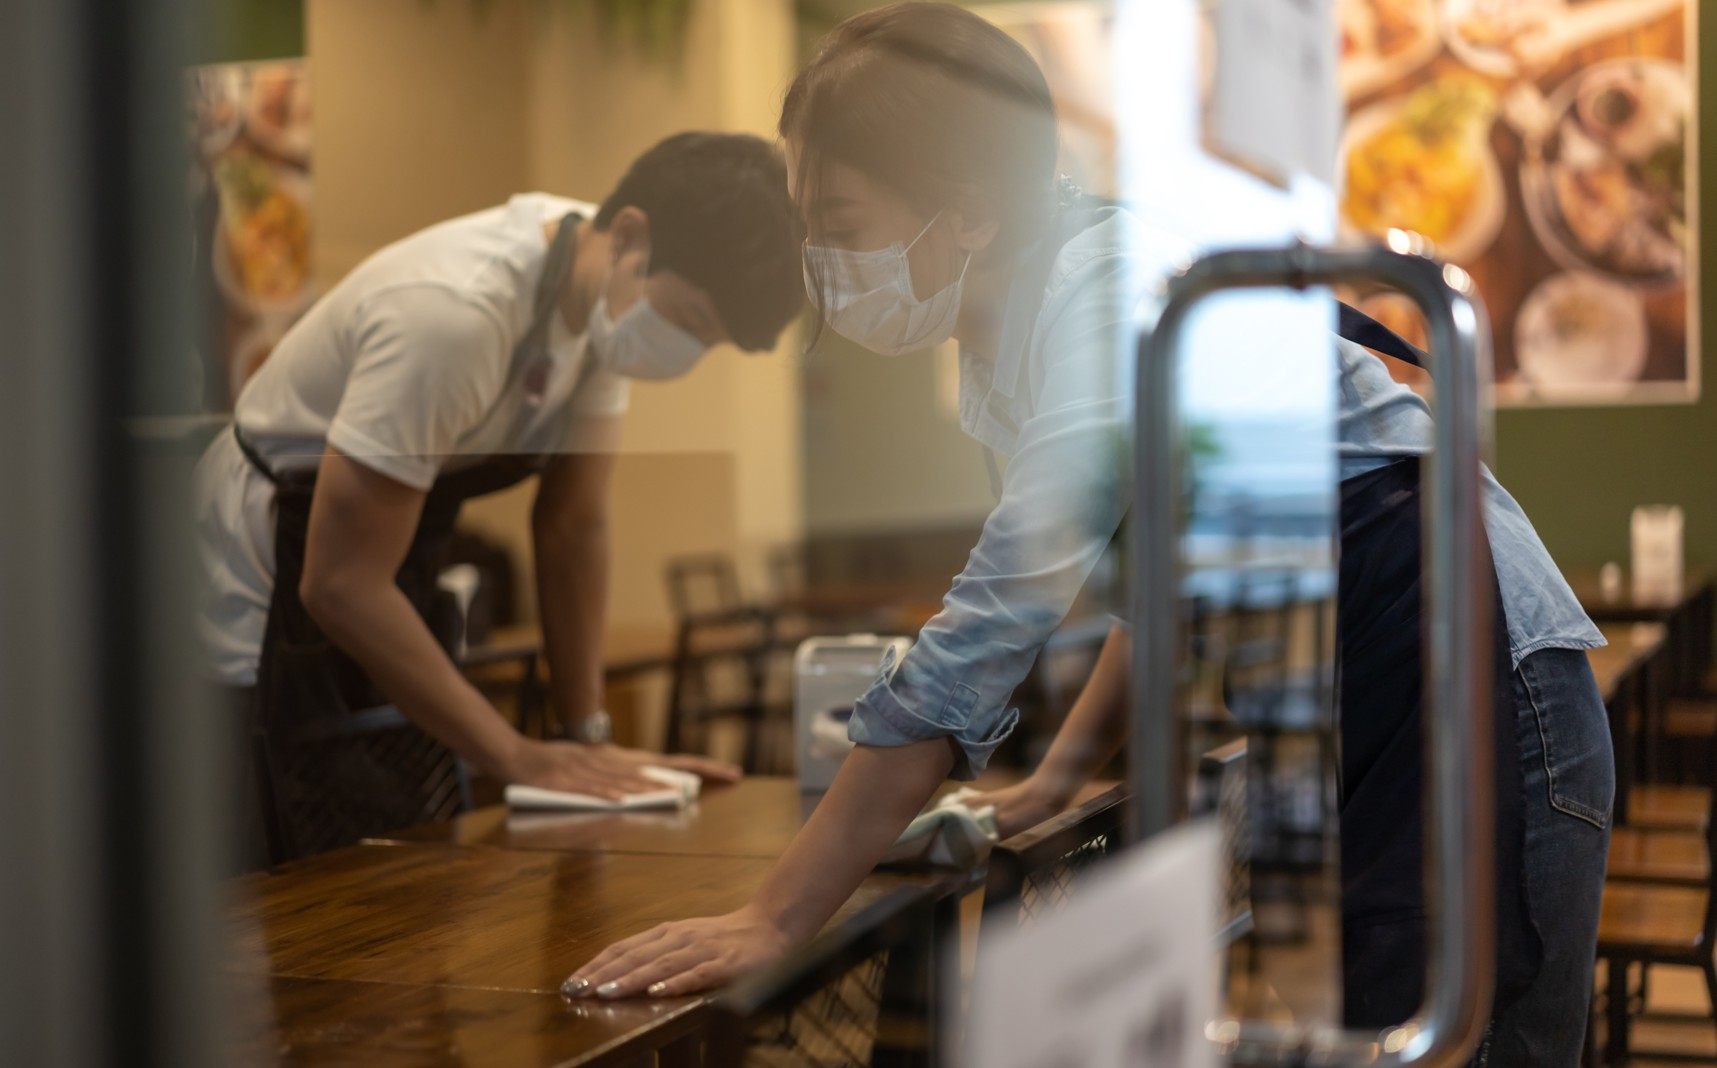 Wiping down table at coffee shop